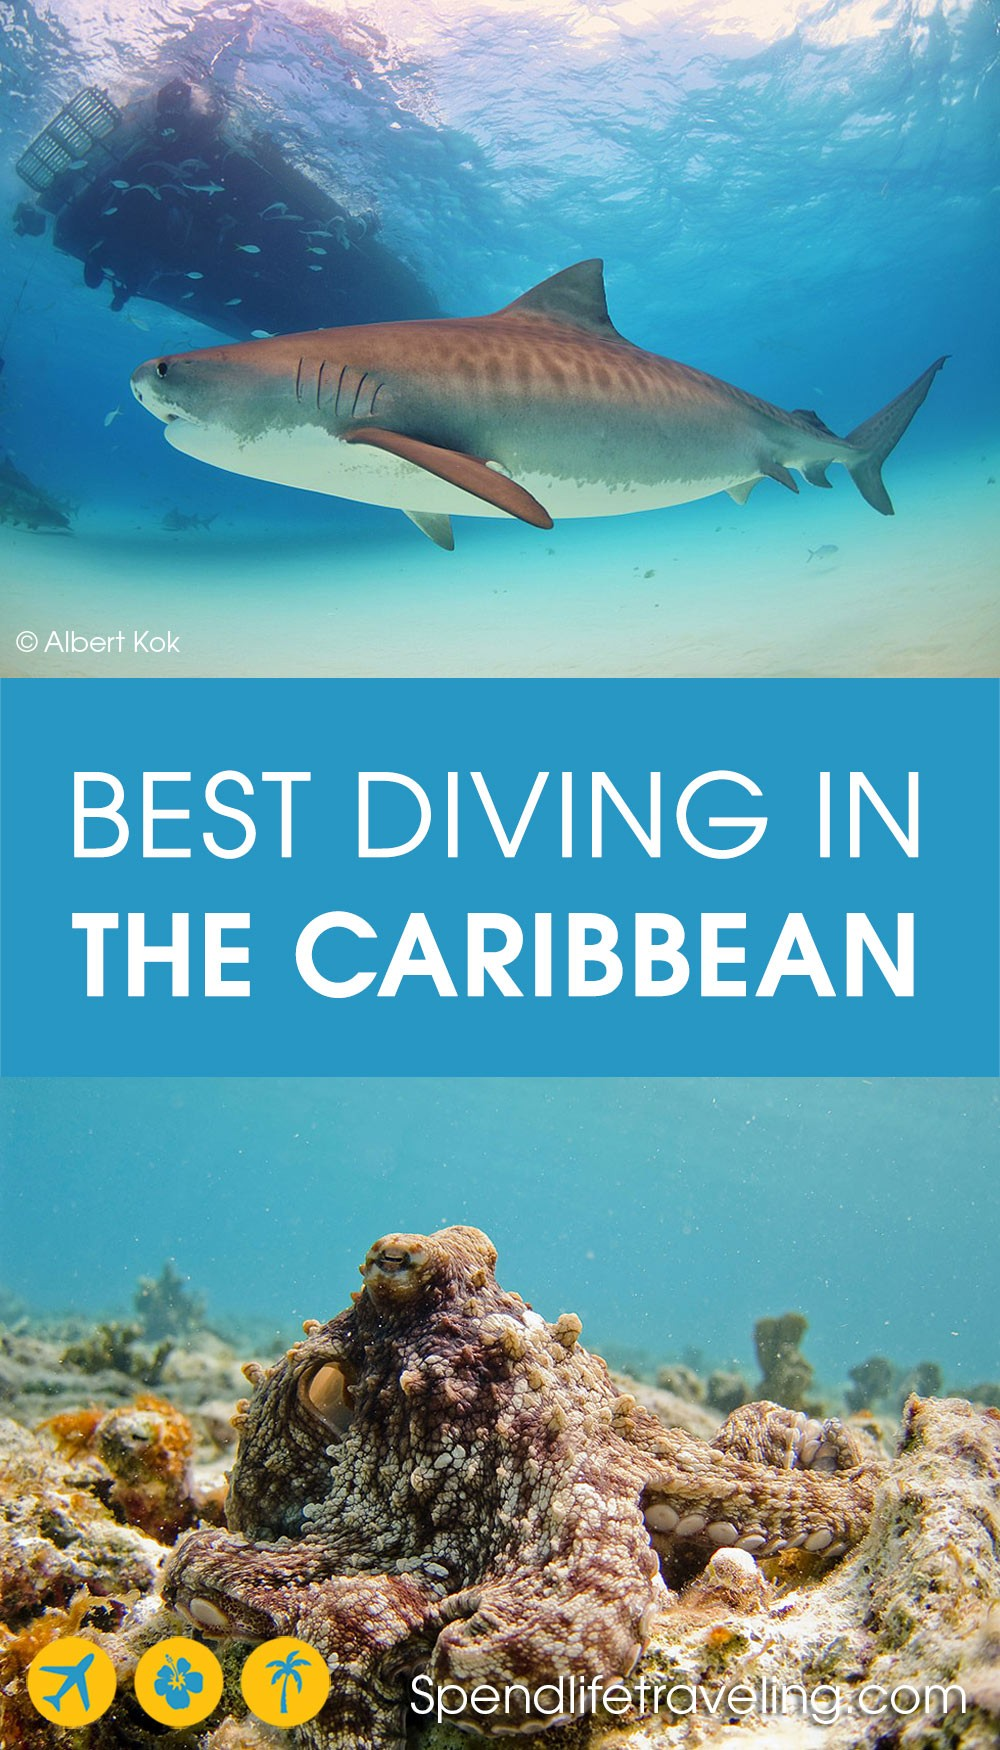 where to go for the best diving in the Caribbean